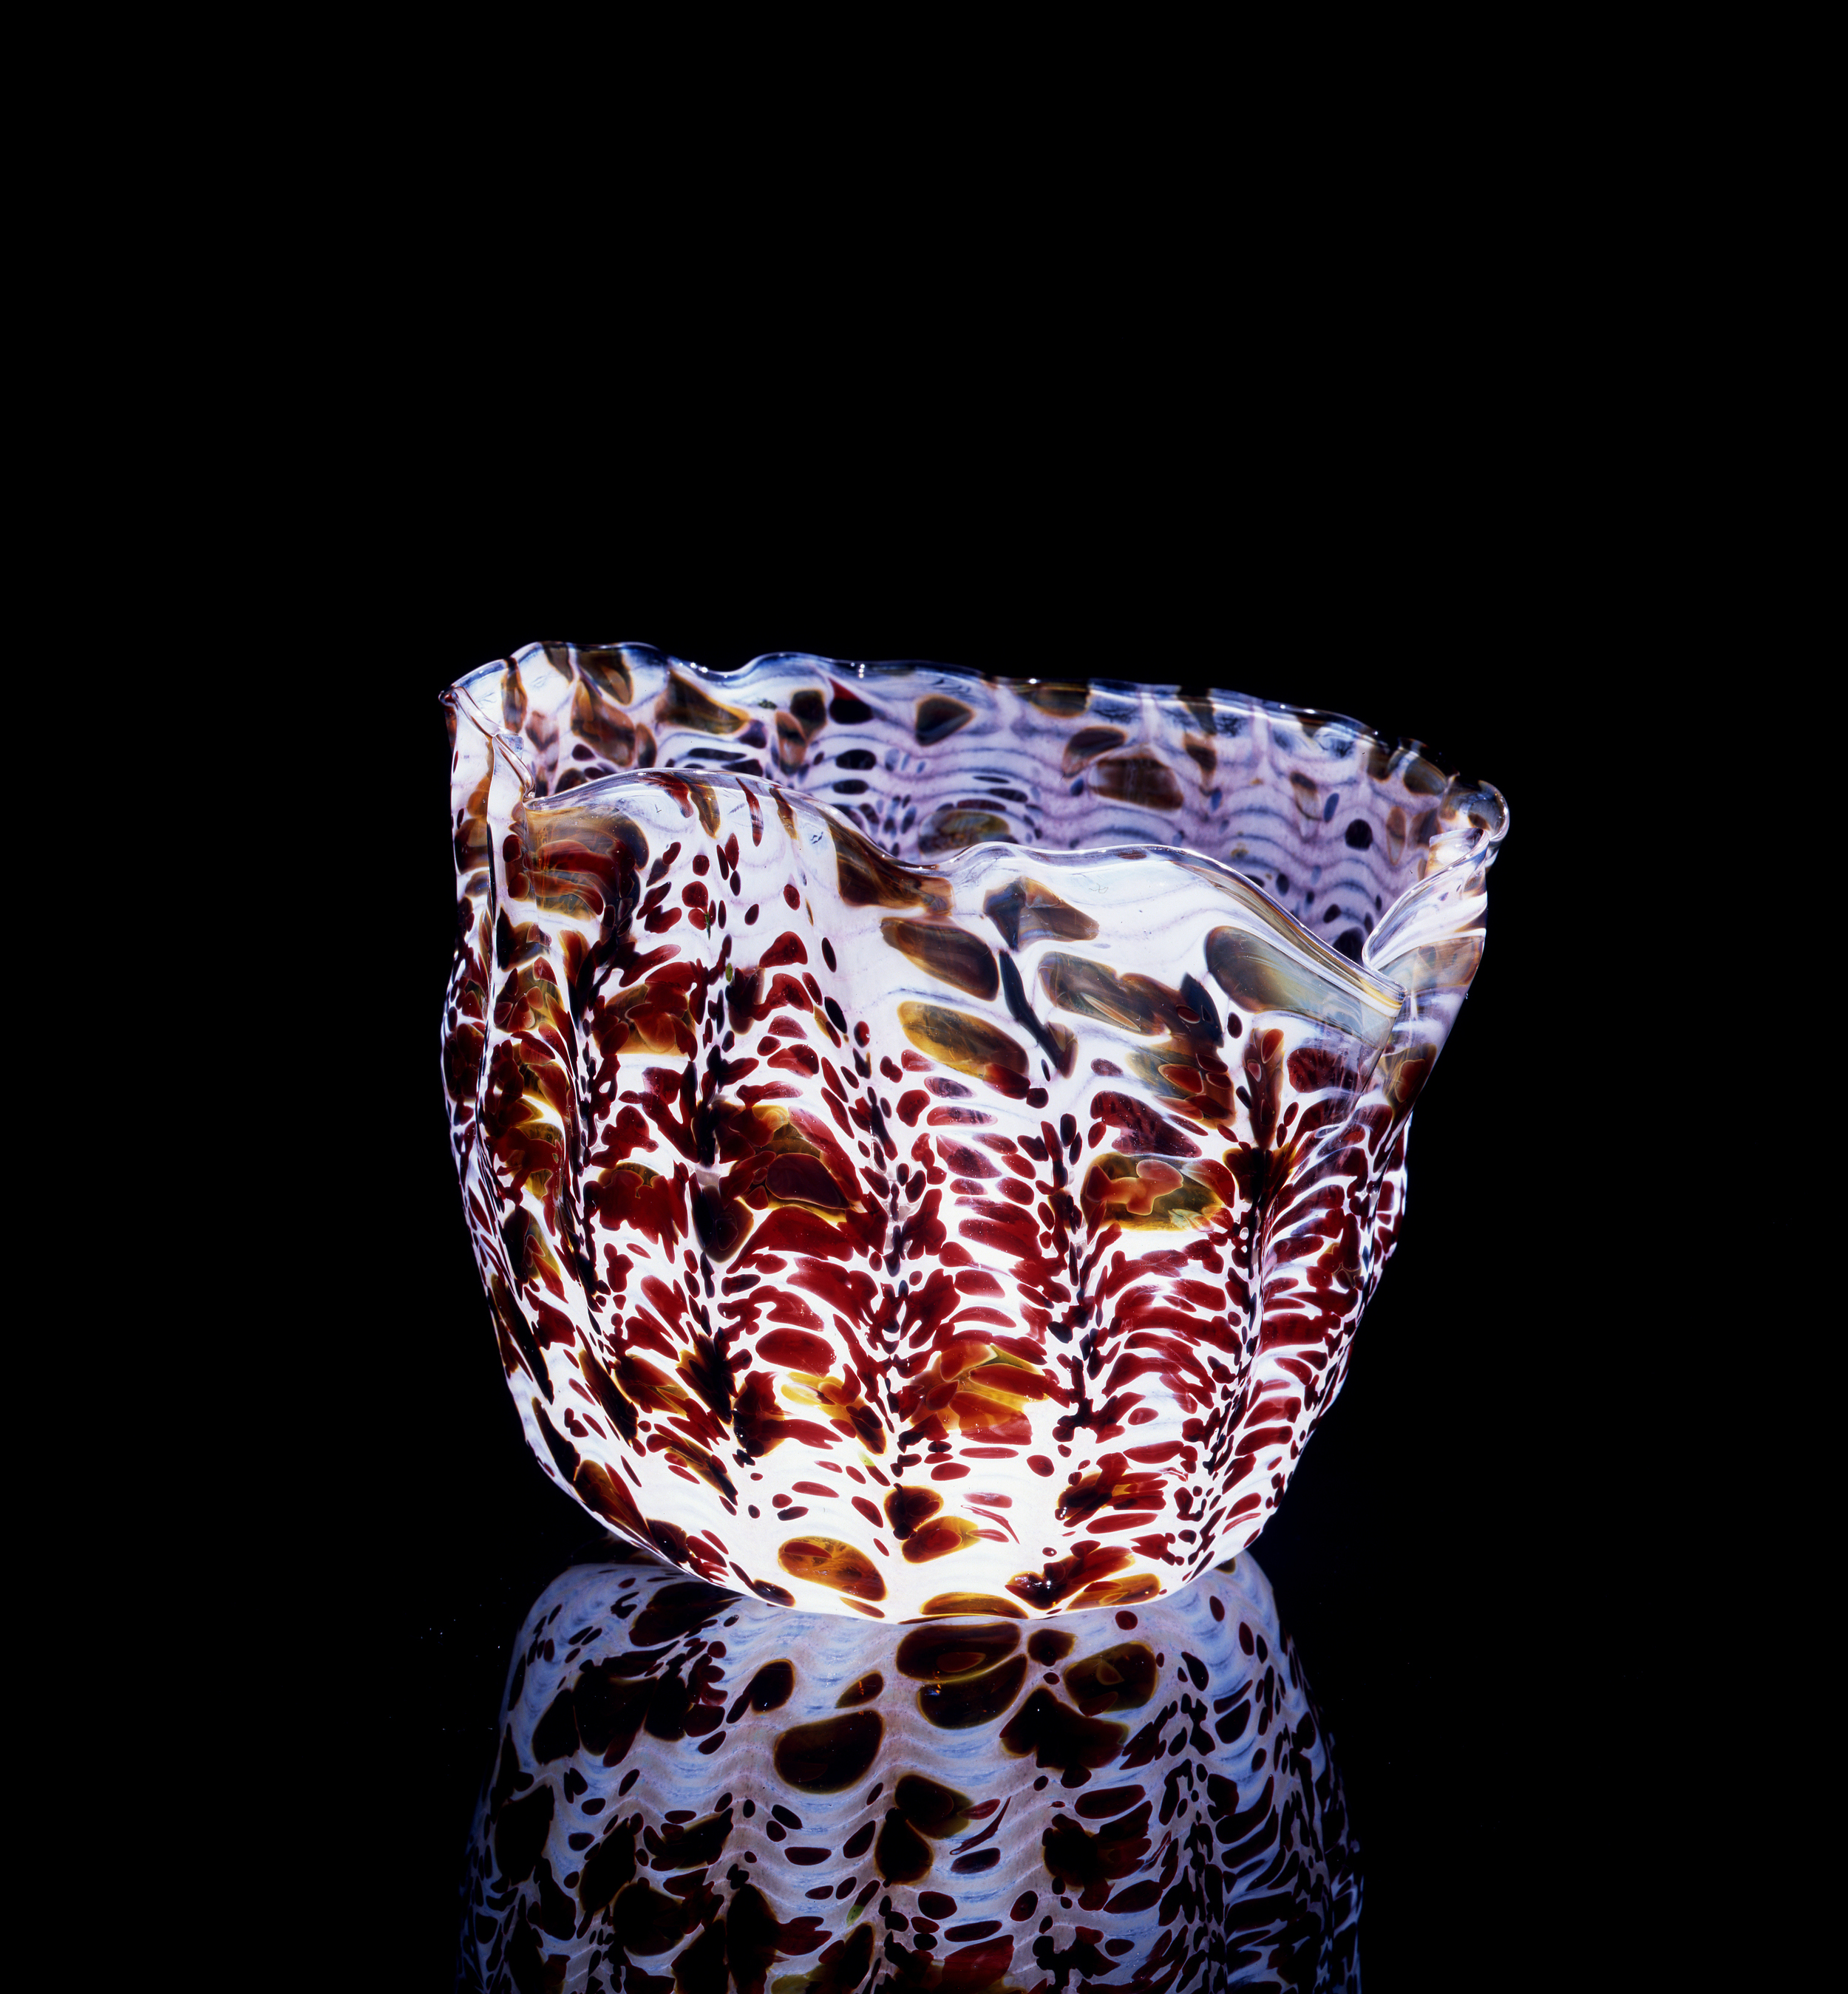 Dale Chihuly,  Abalone and Crimson Spotted Macchia   (1982, glass, 7 x 9 x 9inches), DC.64